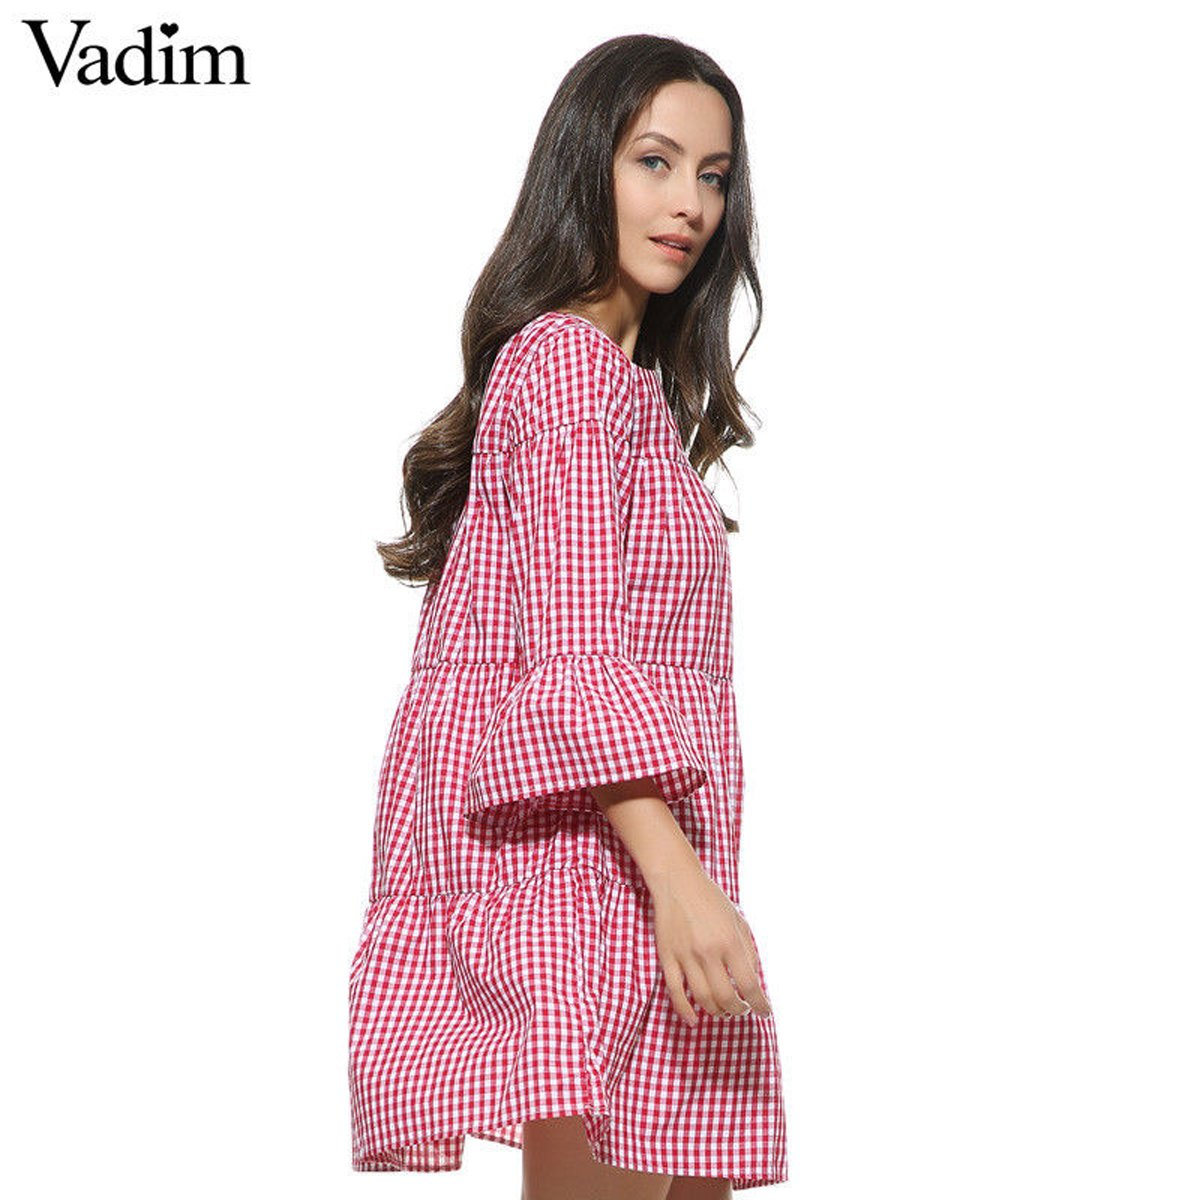 Amazon.com: vadim Women Oversized Pleated Checkered Casual Summer Dress: Clothing